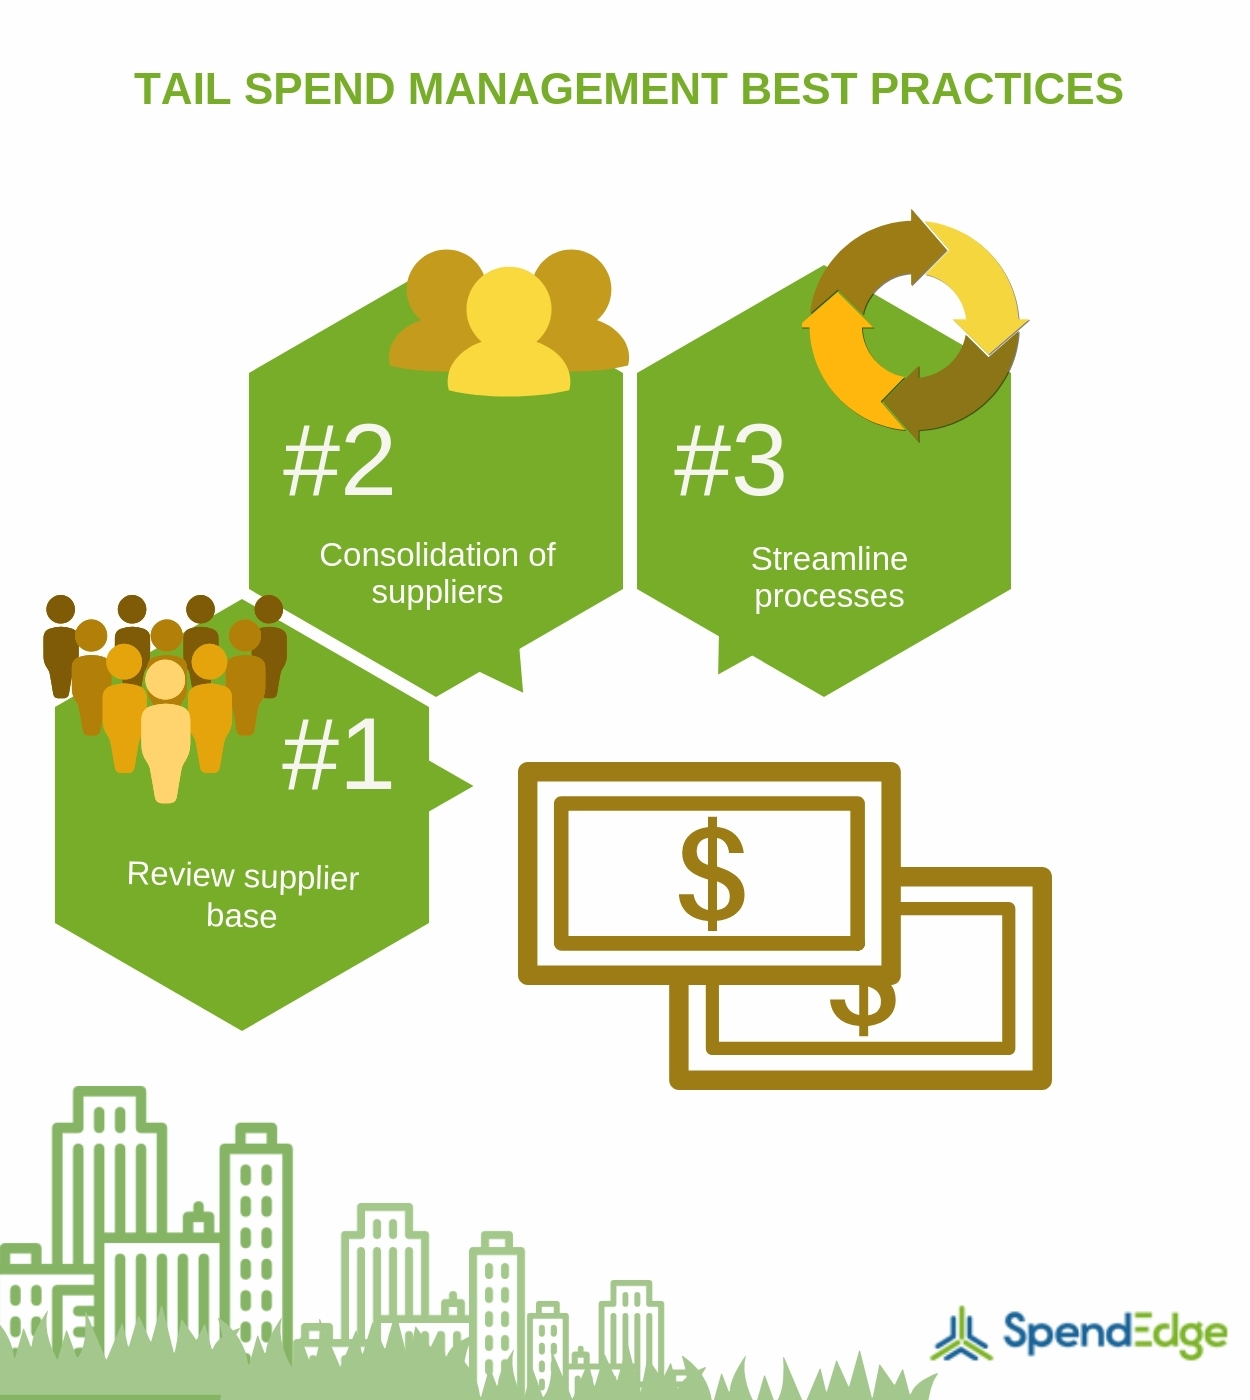 Mms Now Trying To Scam Irish >> Tail Spend Management Solutions Preventing Scams For Businesses By